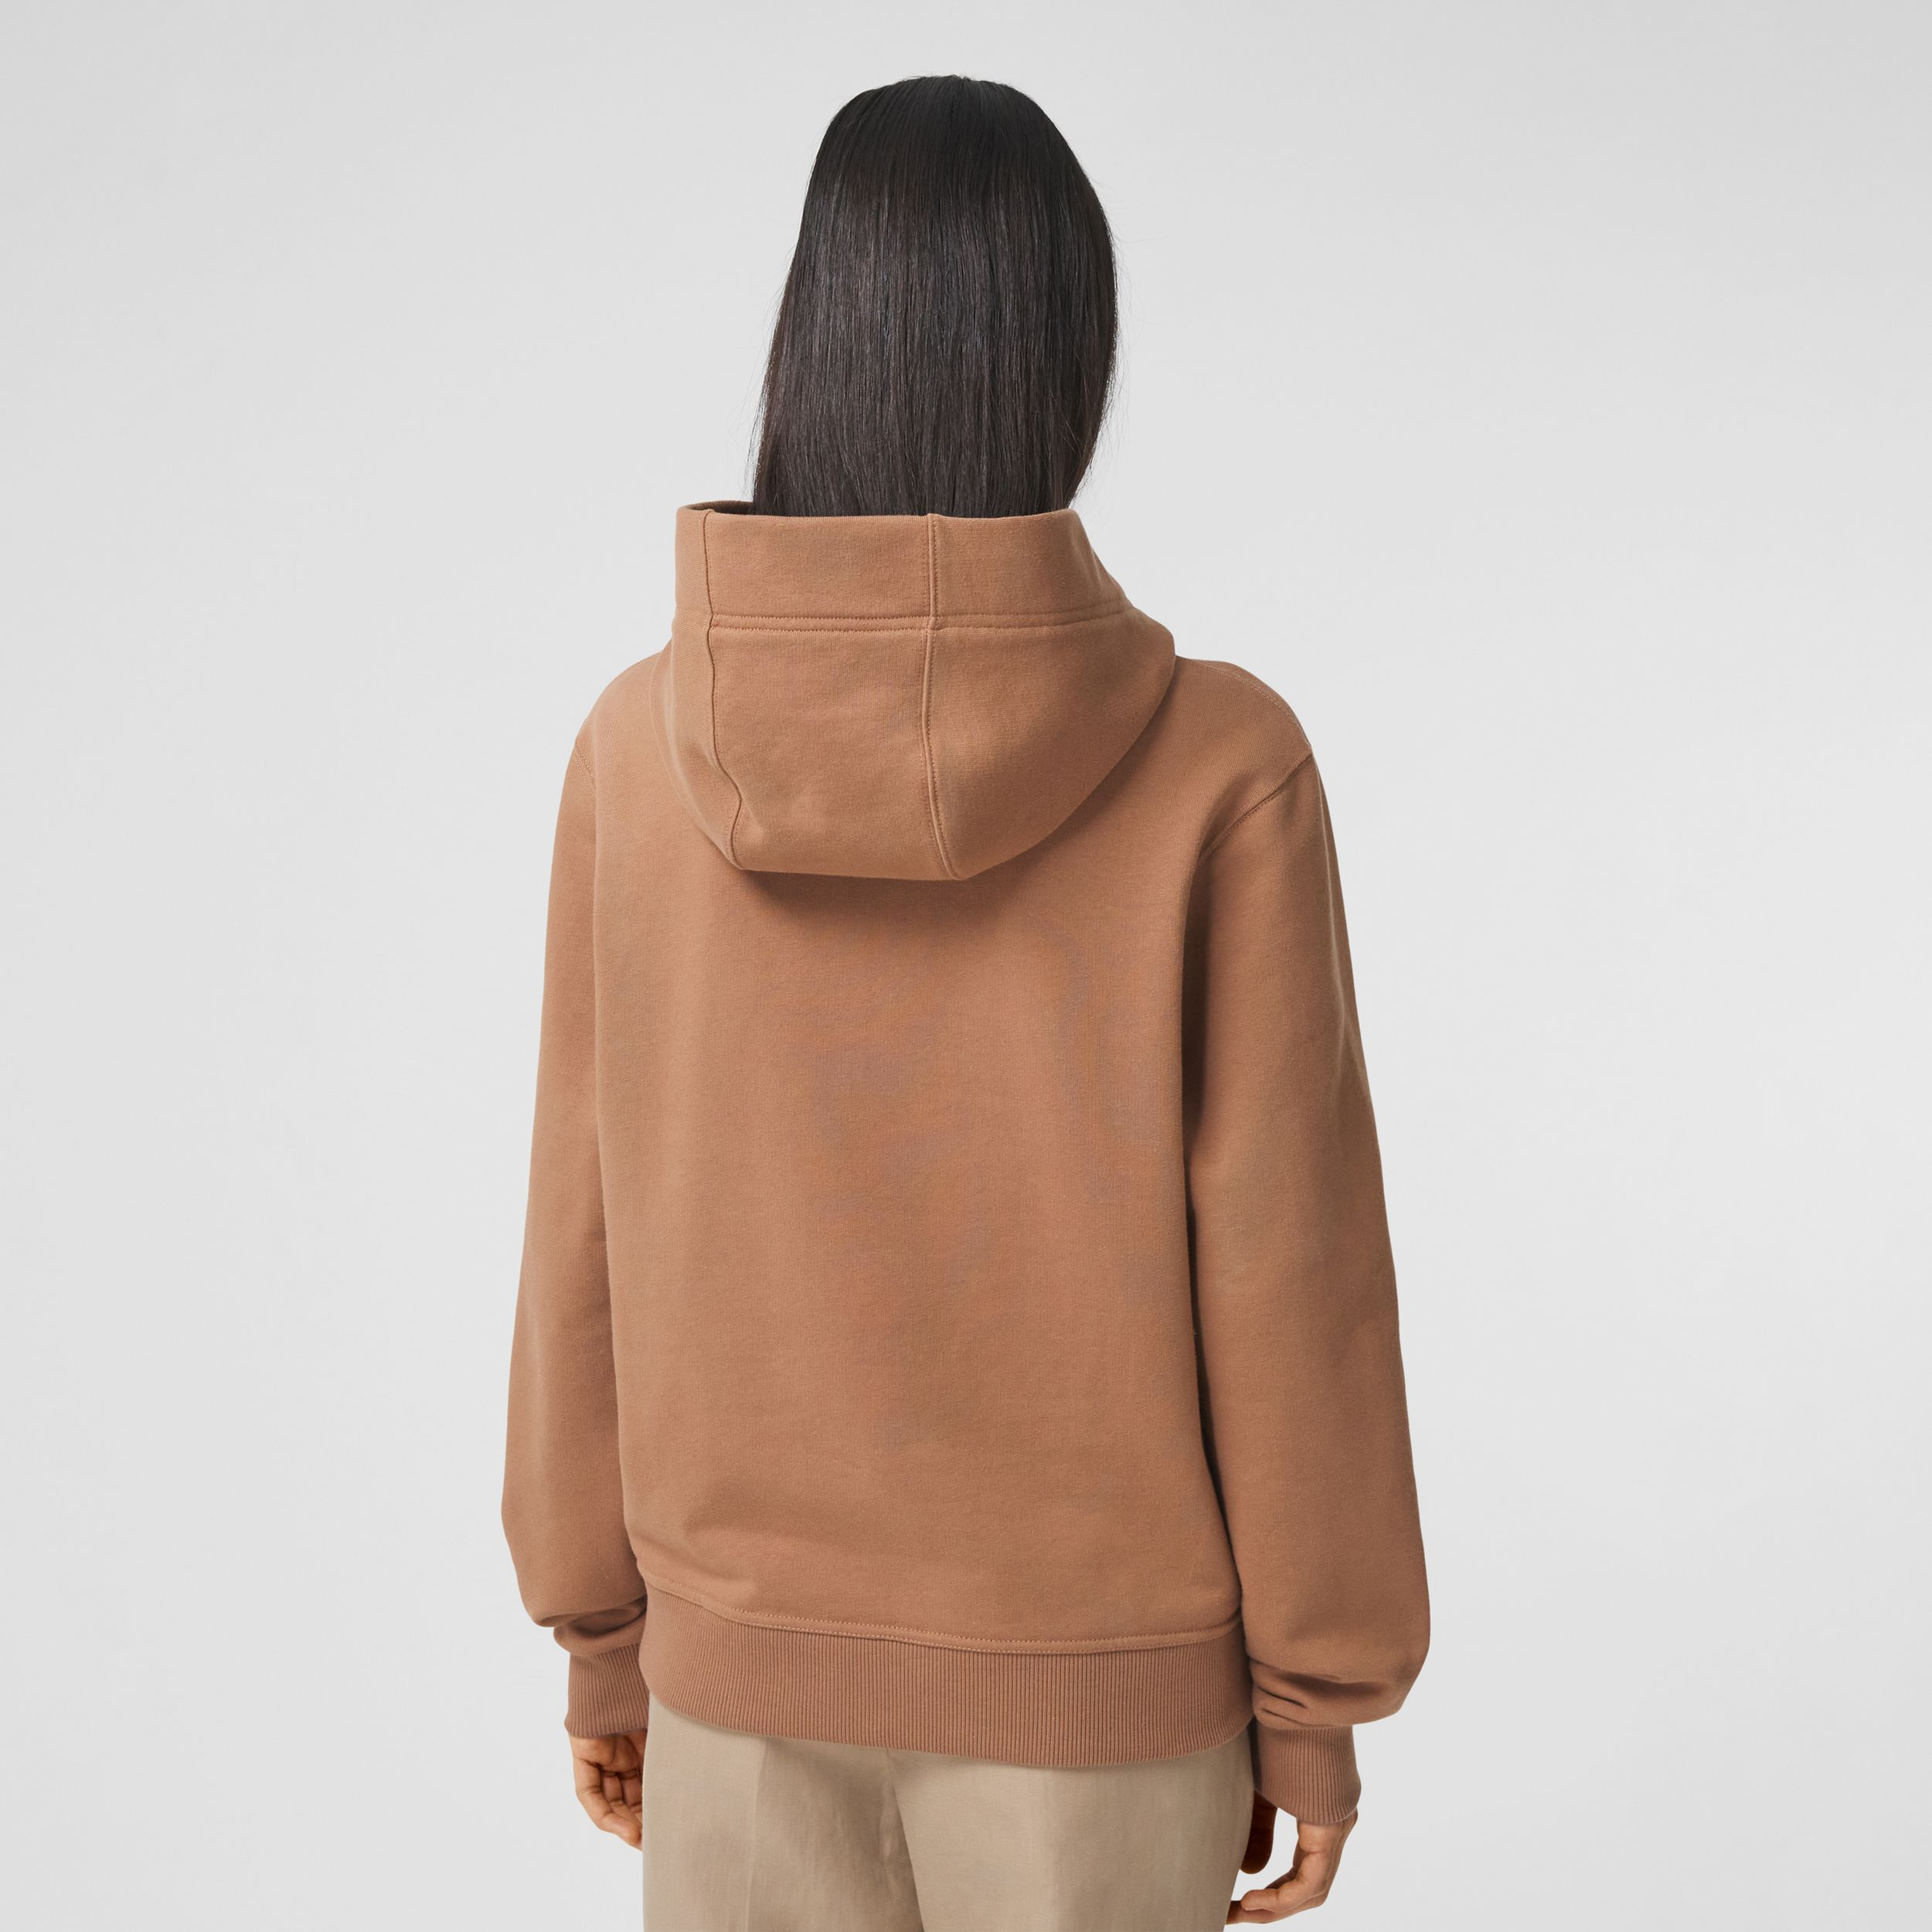 Lace-up Horseferry Print Cotton Oversized Hoodie in Camel - Women | Burberry - 3